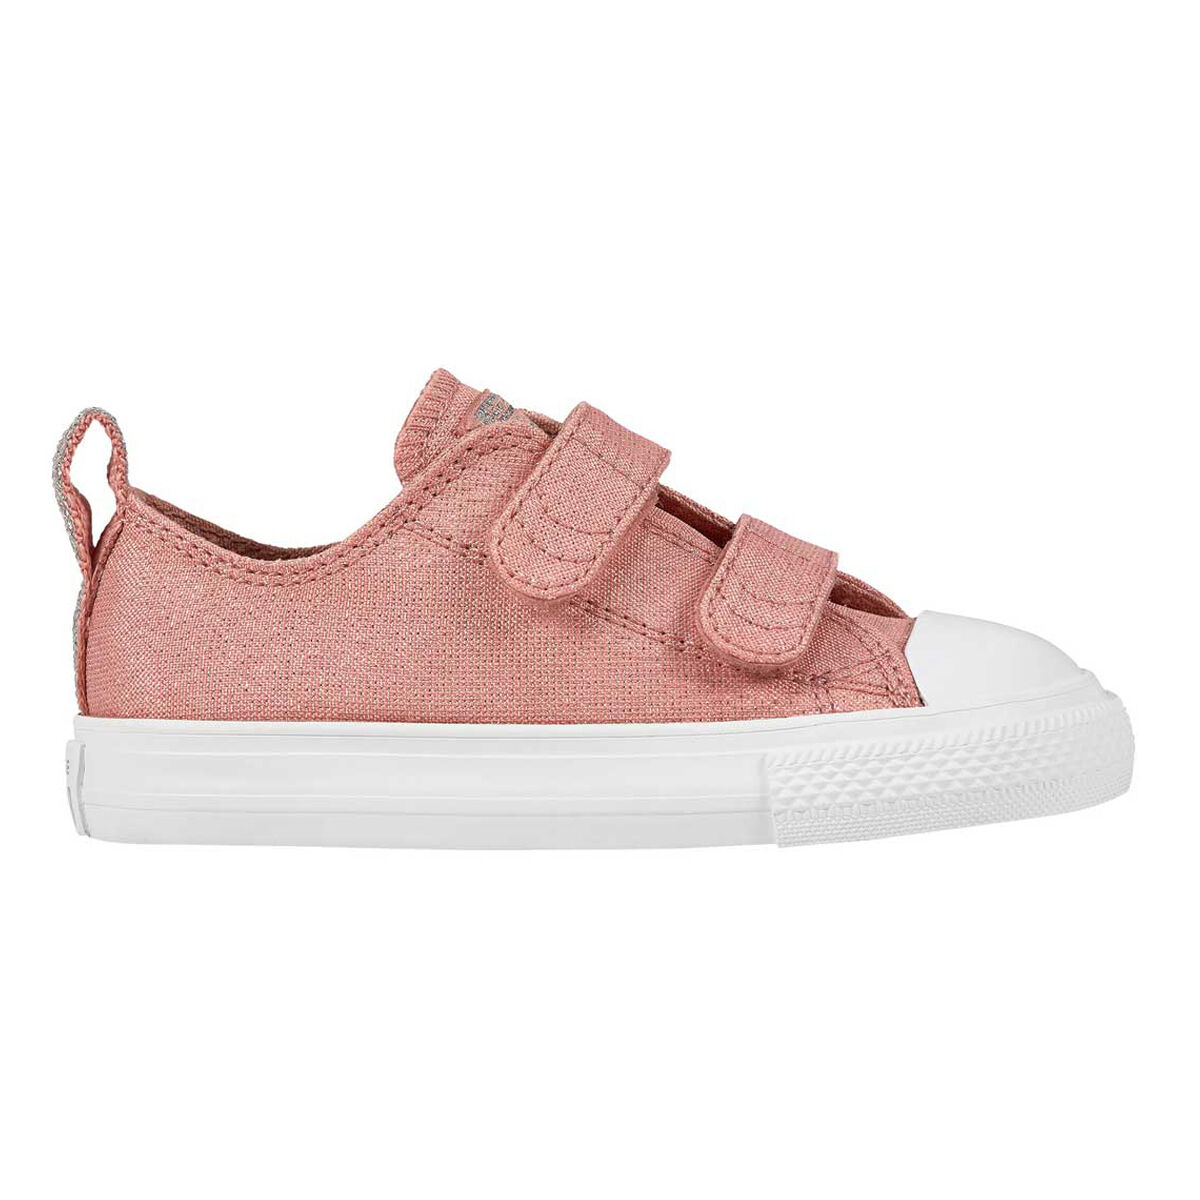 Converse Chuck Taylor All Star Fairy Dust Toddlers Shoes Pink White US 10